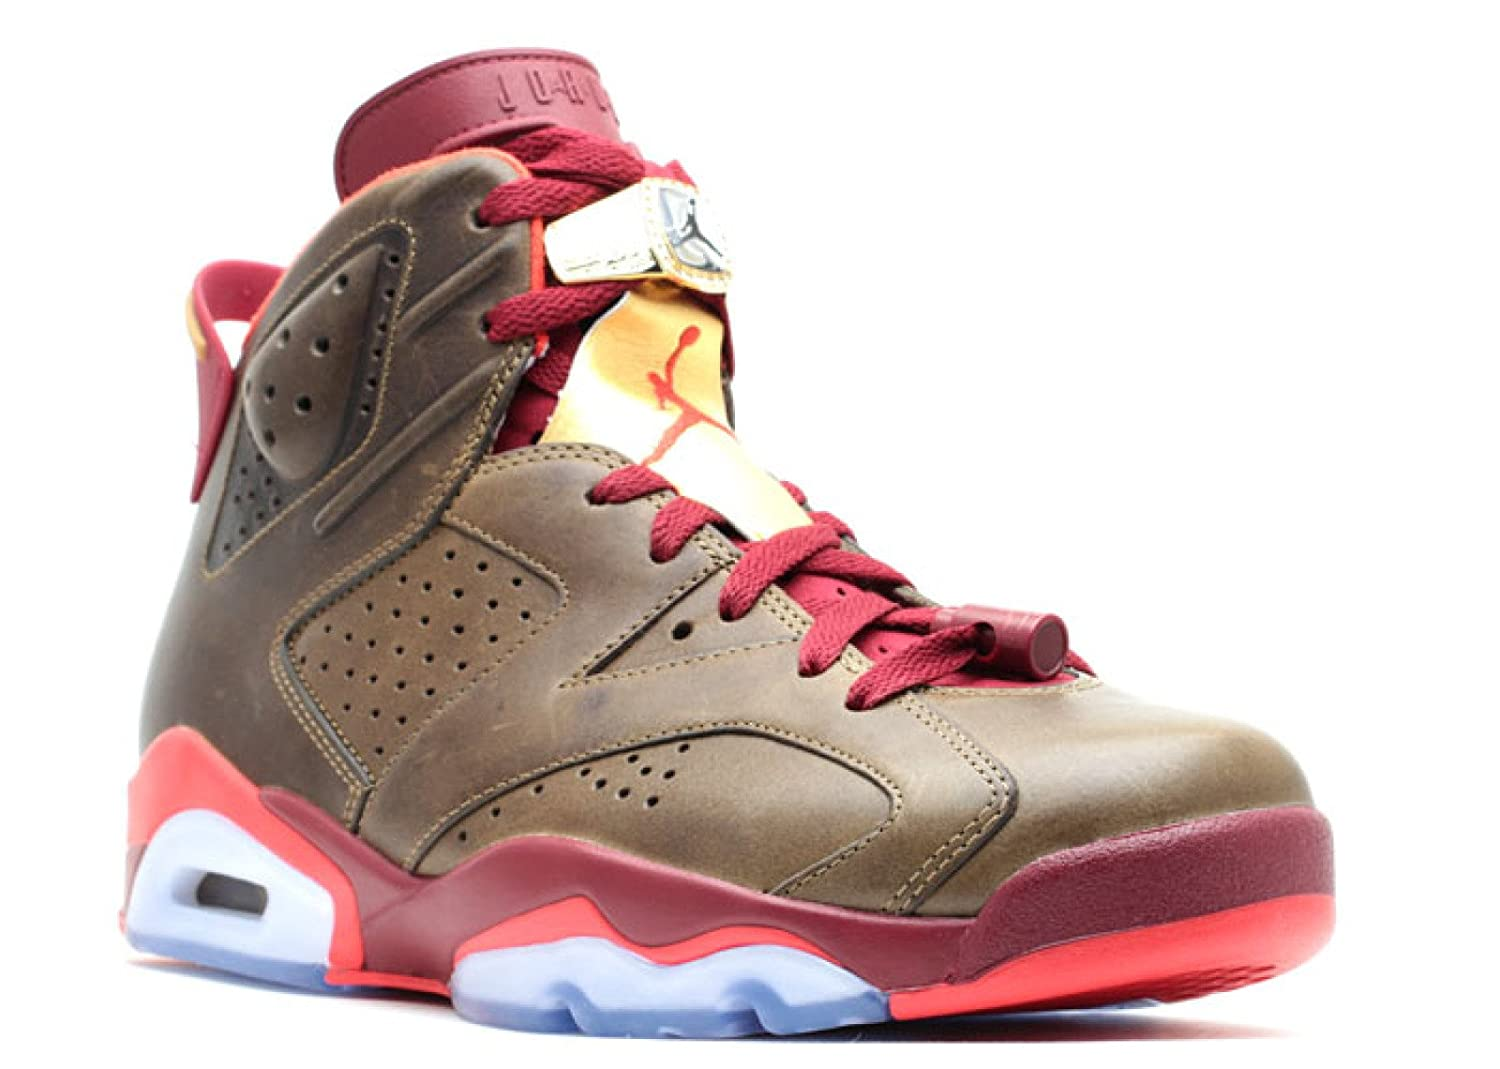 best website cadfd ff8e8 Amazon.com   Jordan Air 6 Retro Championship Cigar Men s Shoes Raw  Umber Challenge Red-Metallic Gold 384664-250   Basketball